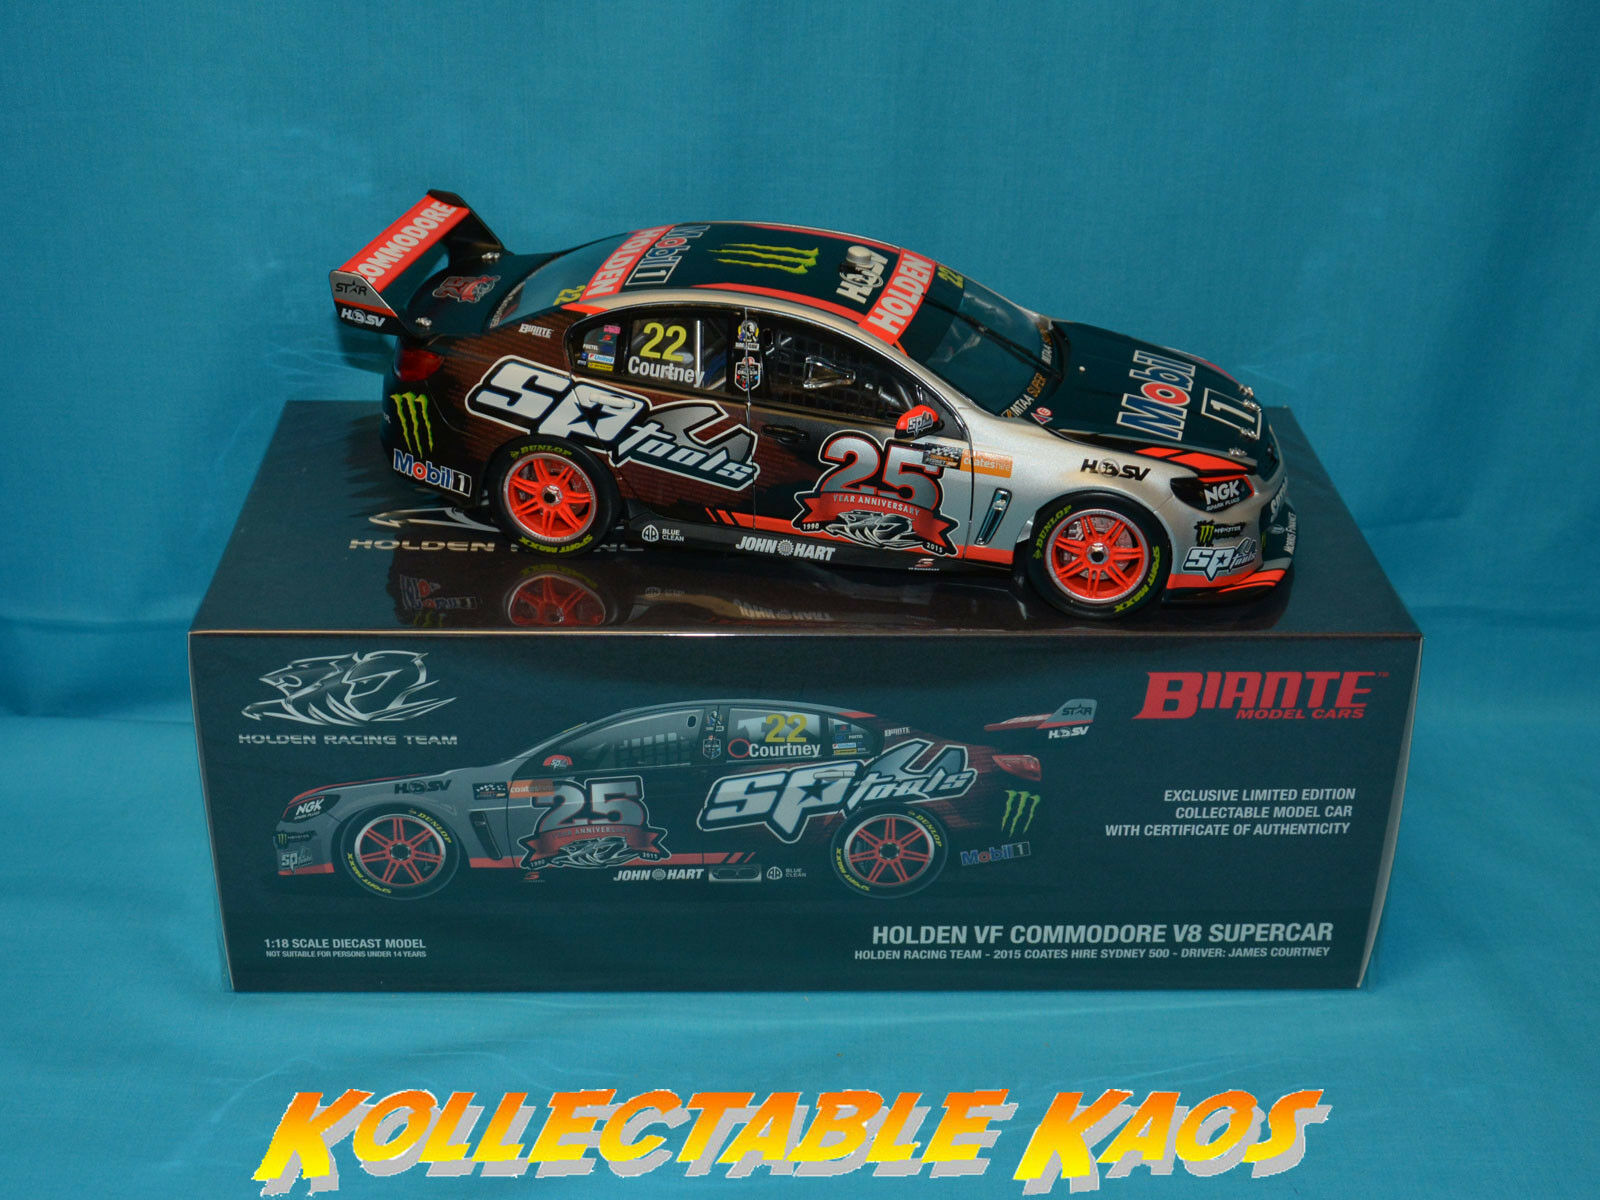 1 18 Biante - 2015 Sydney 500 - Holden VF Commodore - HRT -  22 James Courtney